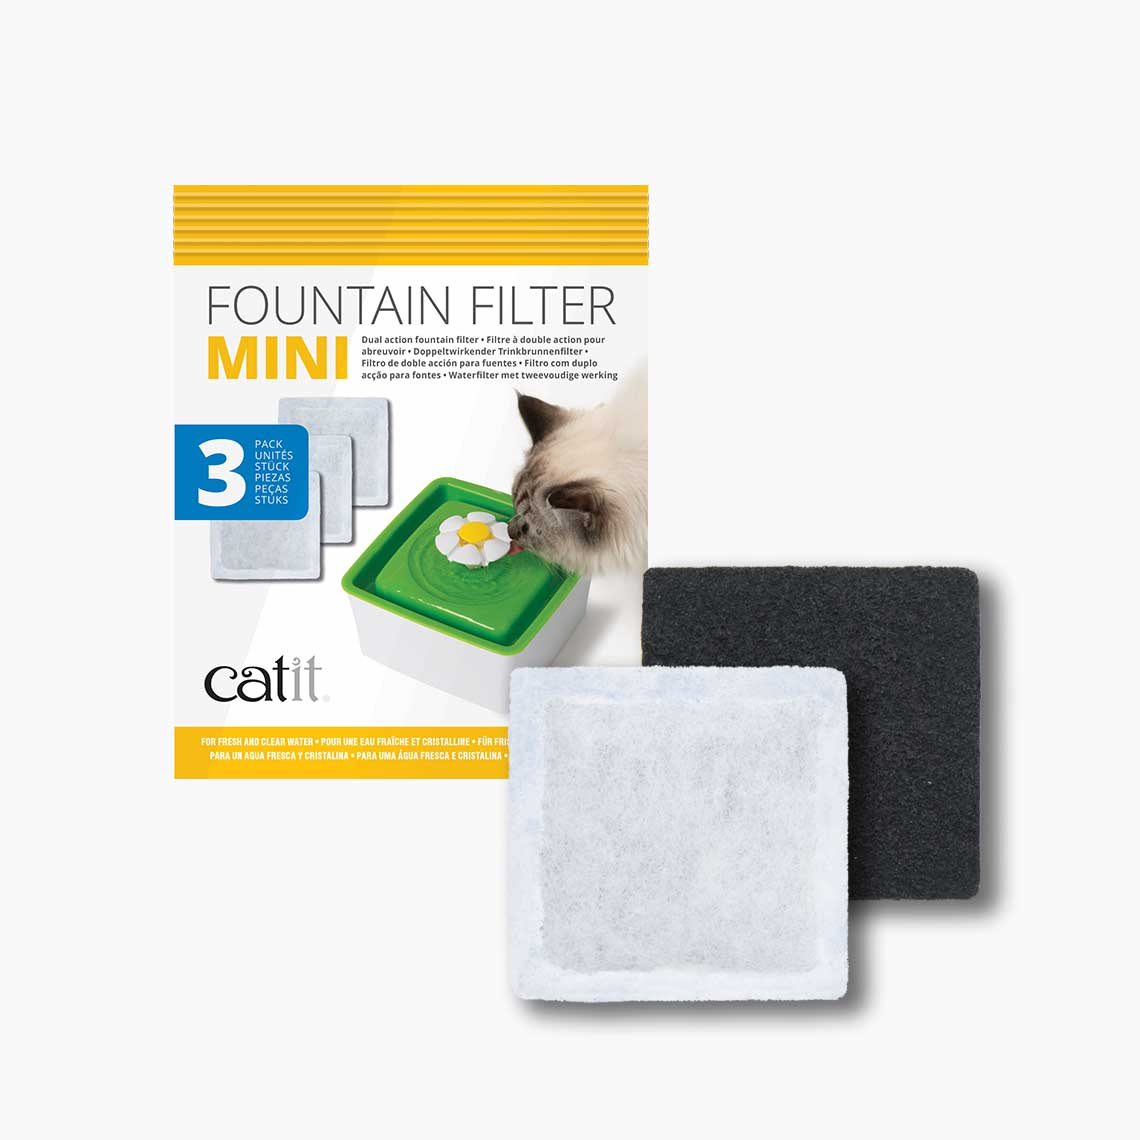 Catit Mini Fountain Filter Image